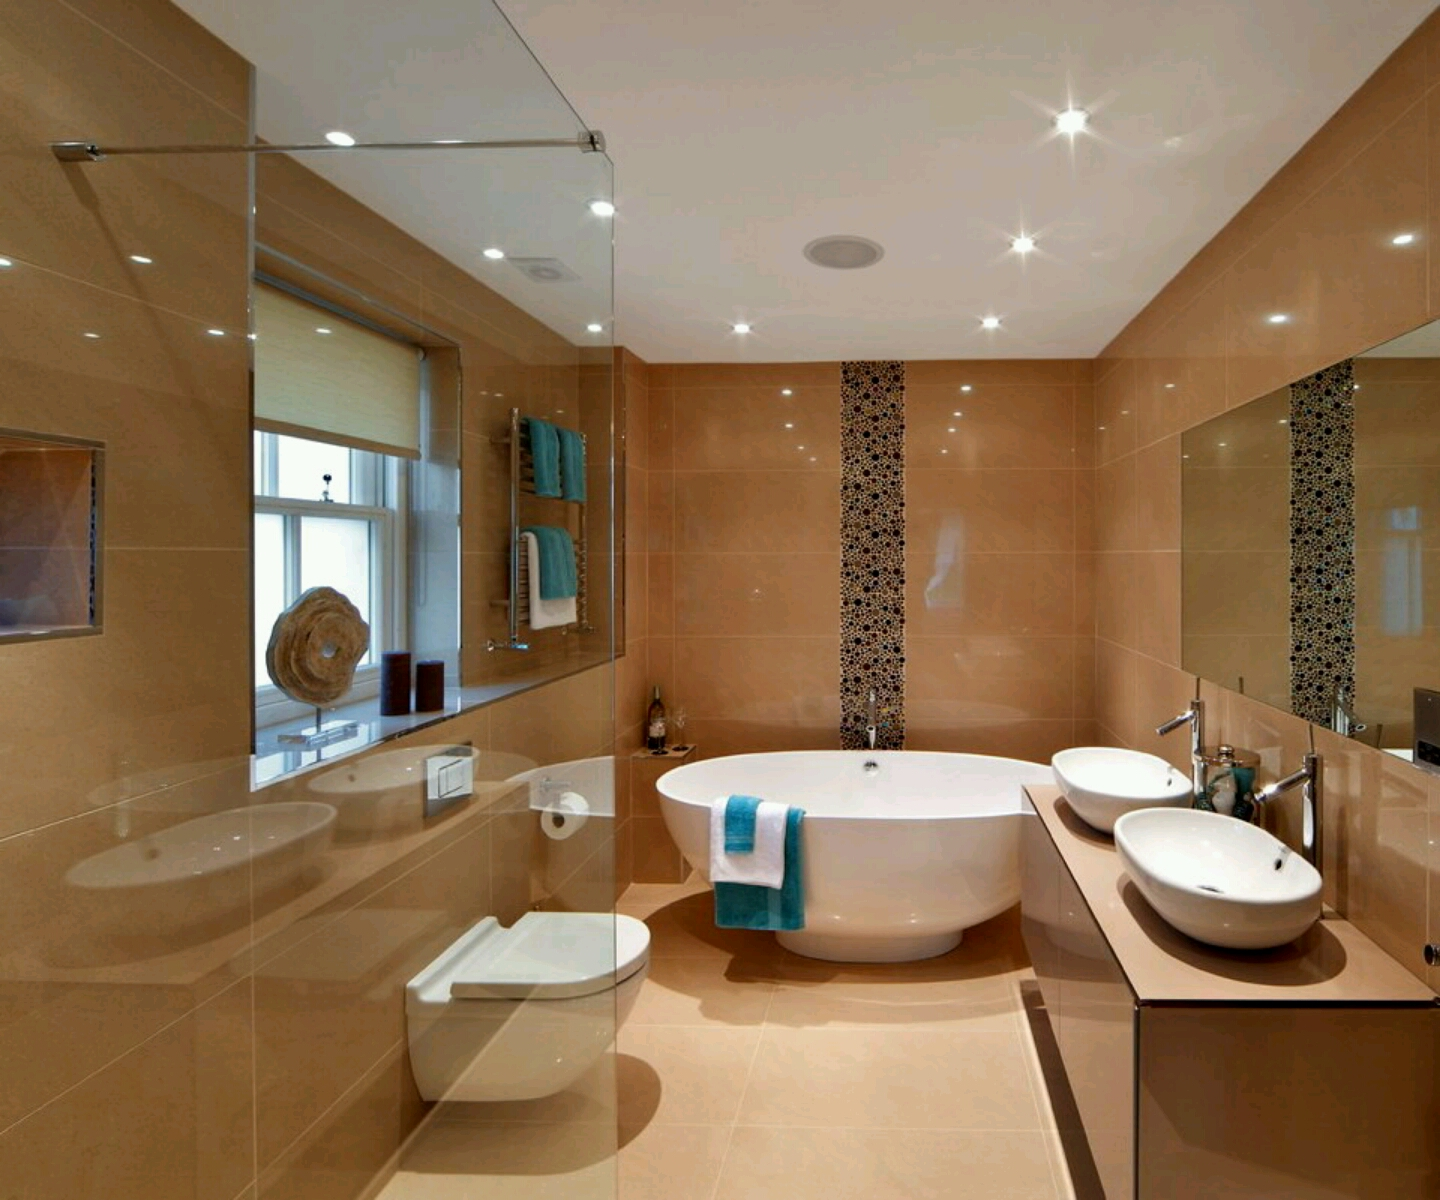 New home designs latest luxury modern bathrooms designs for Bathroom designs ideas 2014